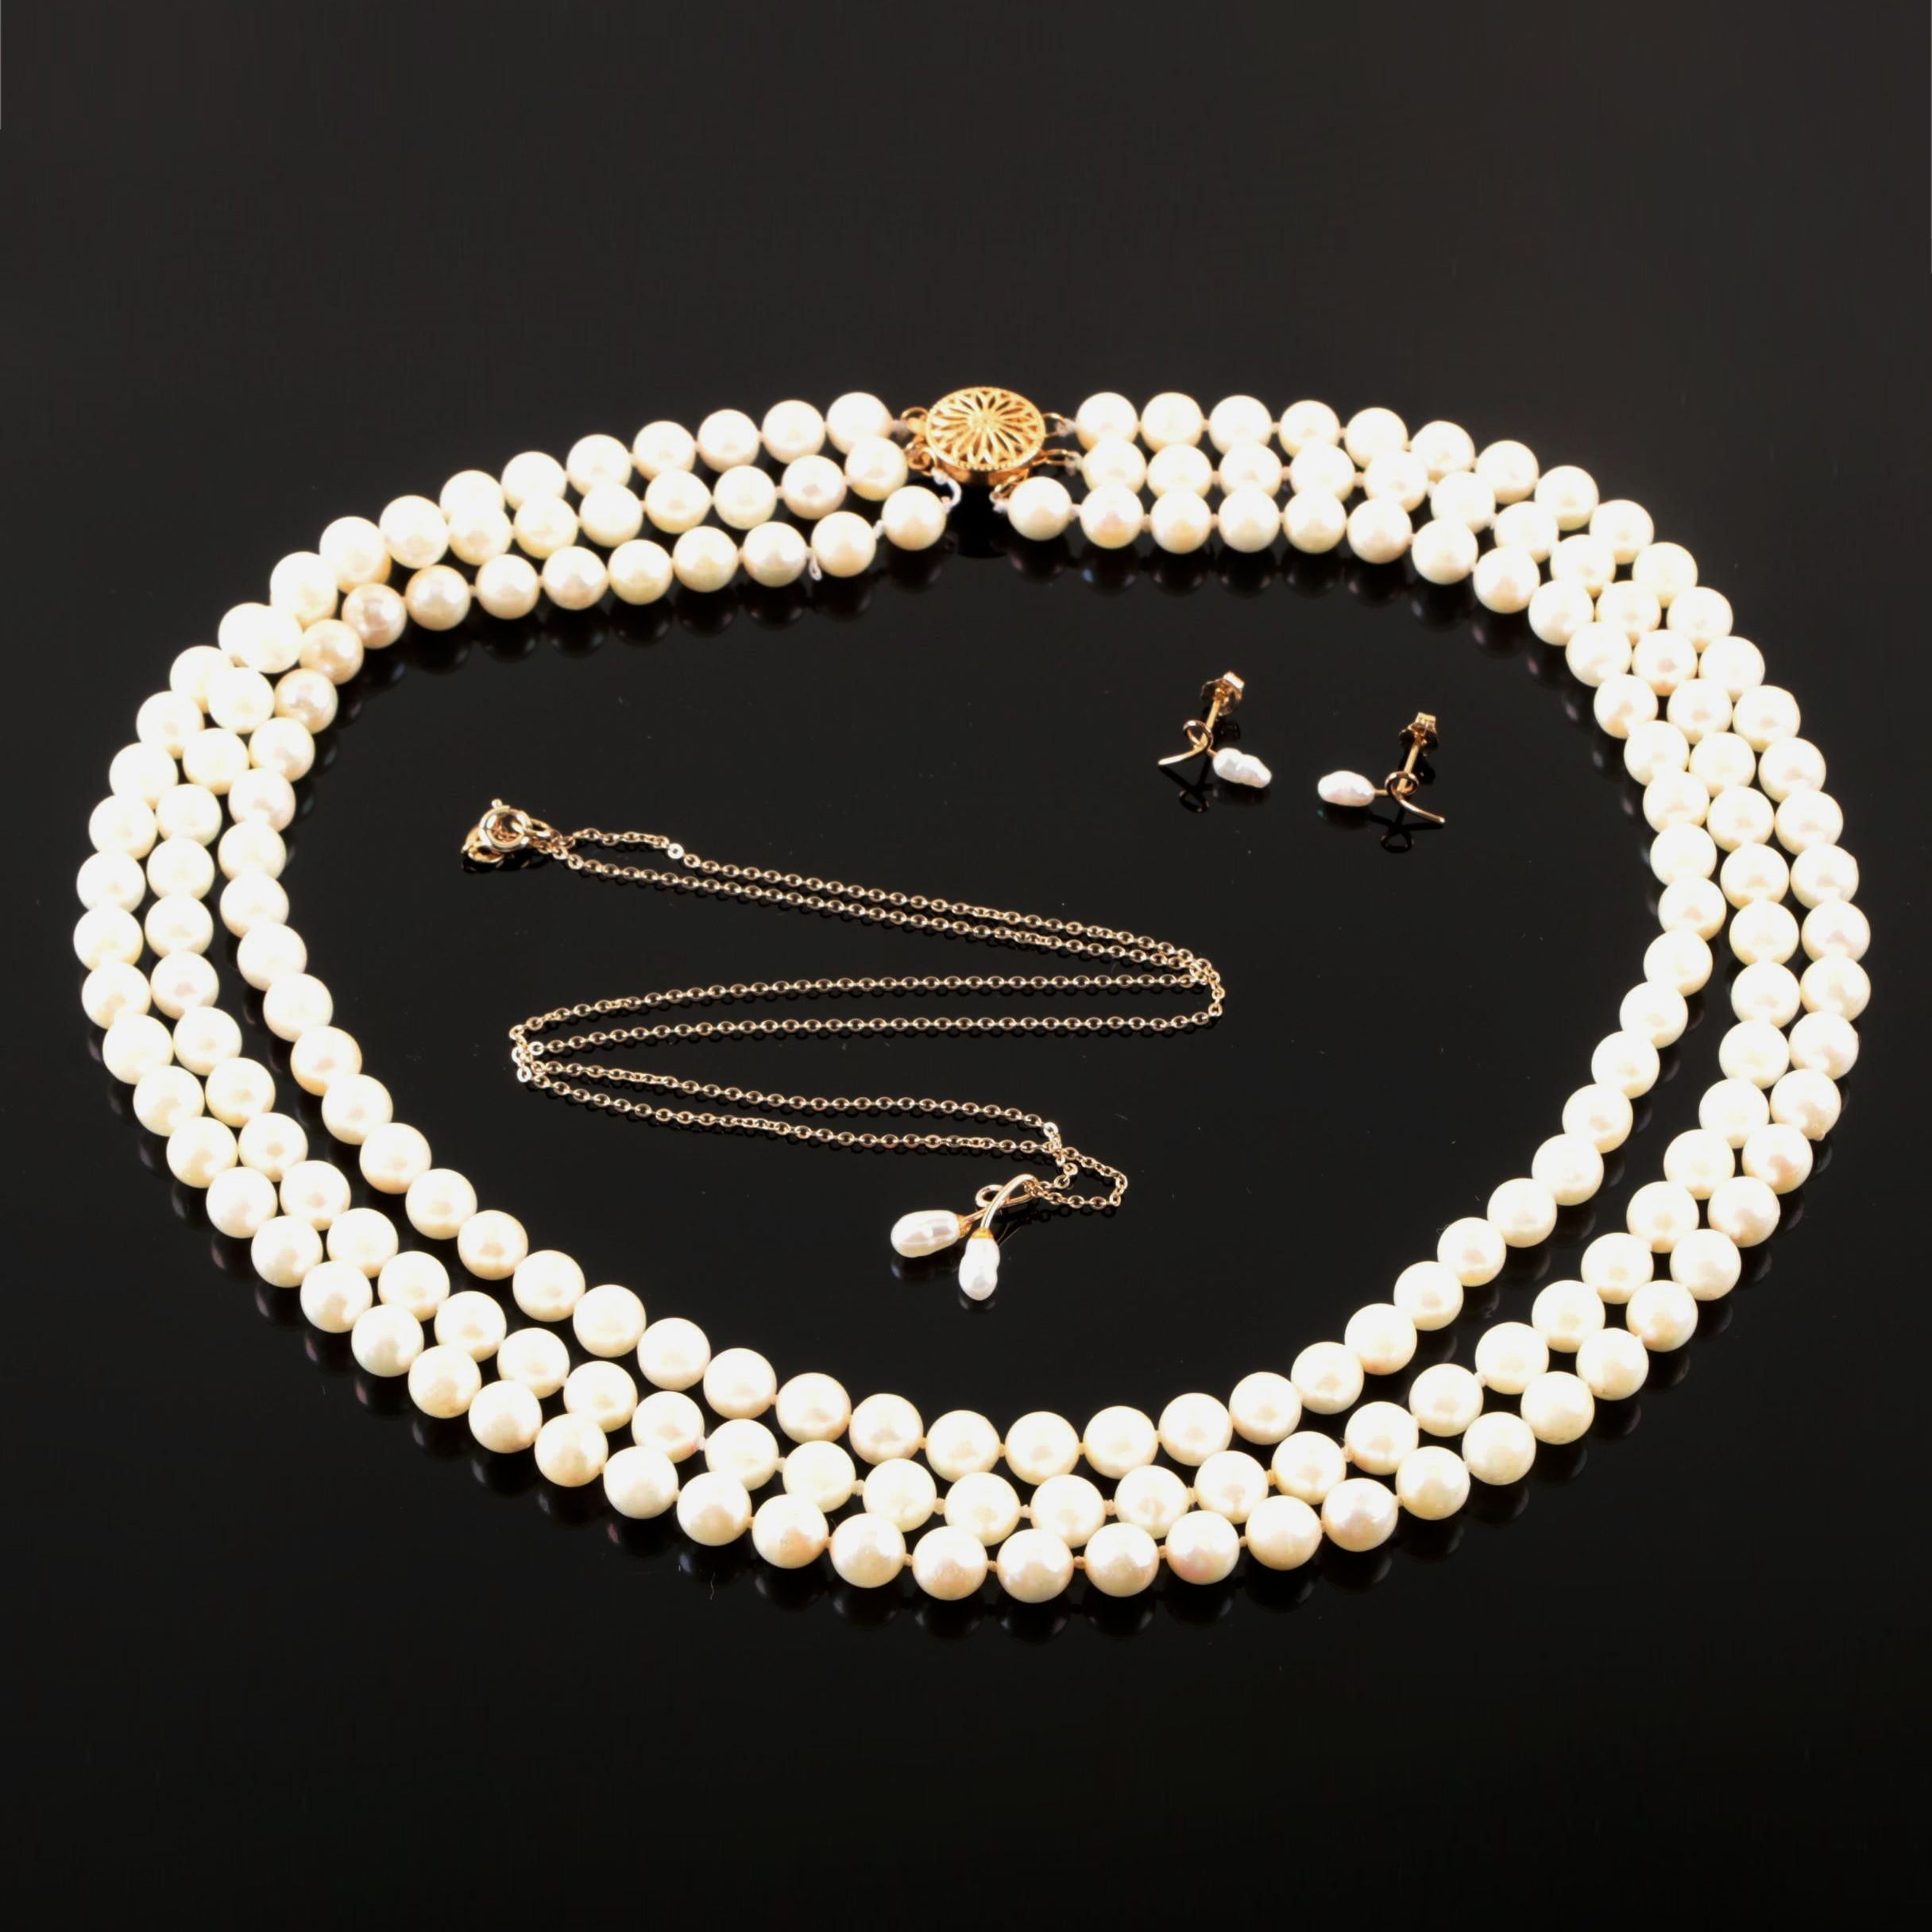 Gold Filled, Gold Tone Cultured Pearl Necklaces and Earrings Includes 14K Gold